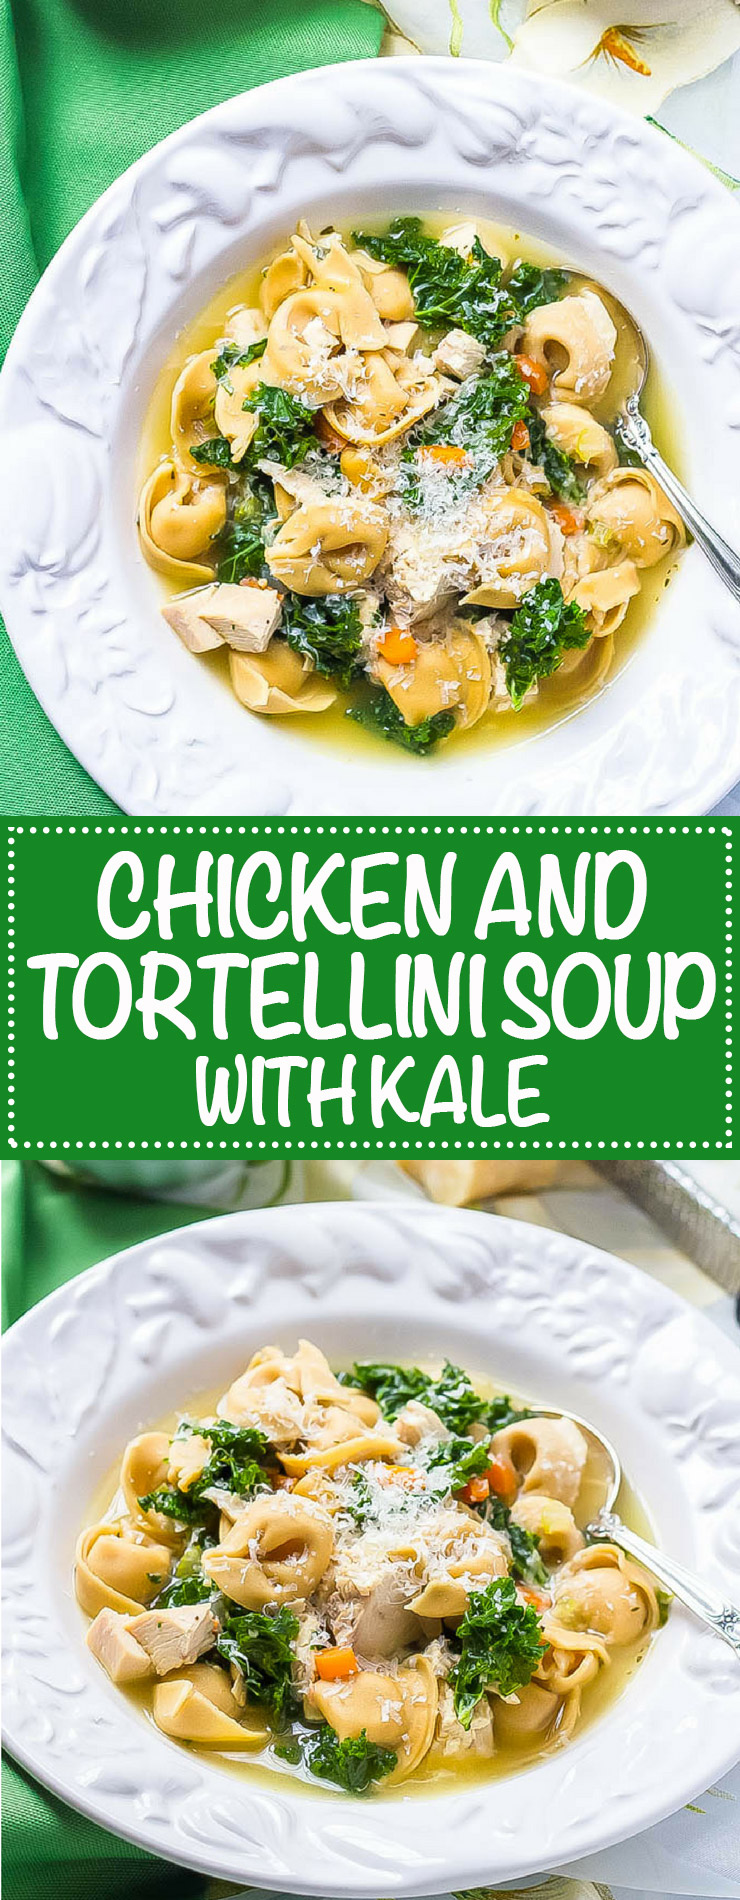 Photo collage of chicken tortellini soup with kale